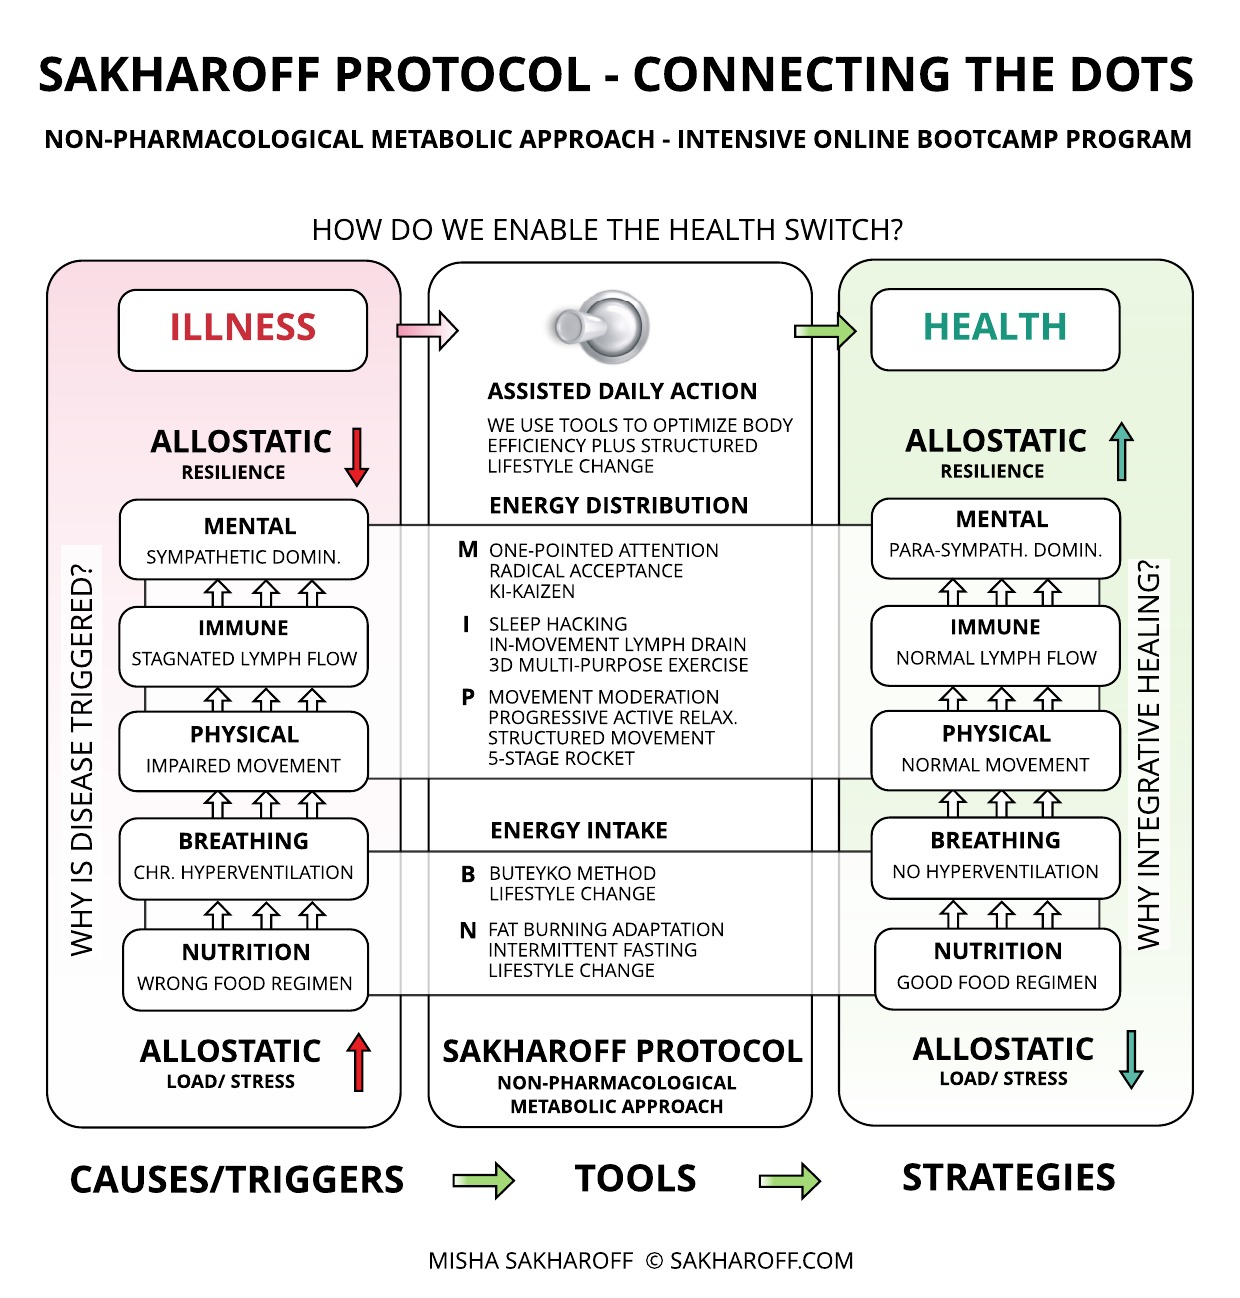 SAKHAROFF PROTOCOL - HOW DOES A NON-PHARMACOLOGICAL METABOLIC APPROACH WORK?